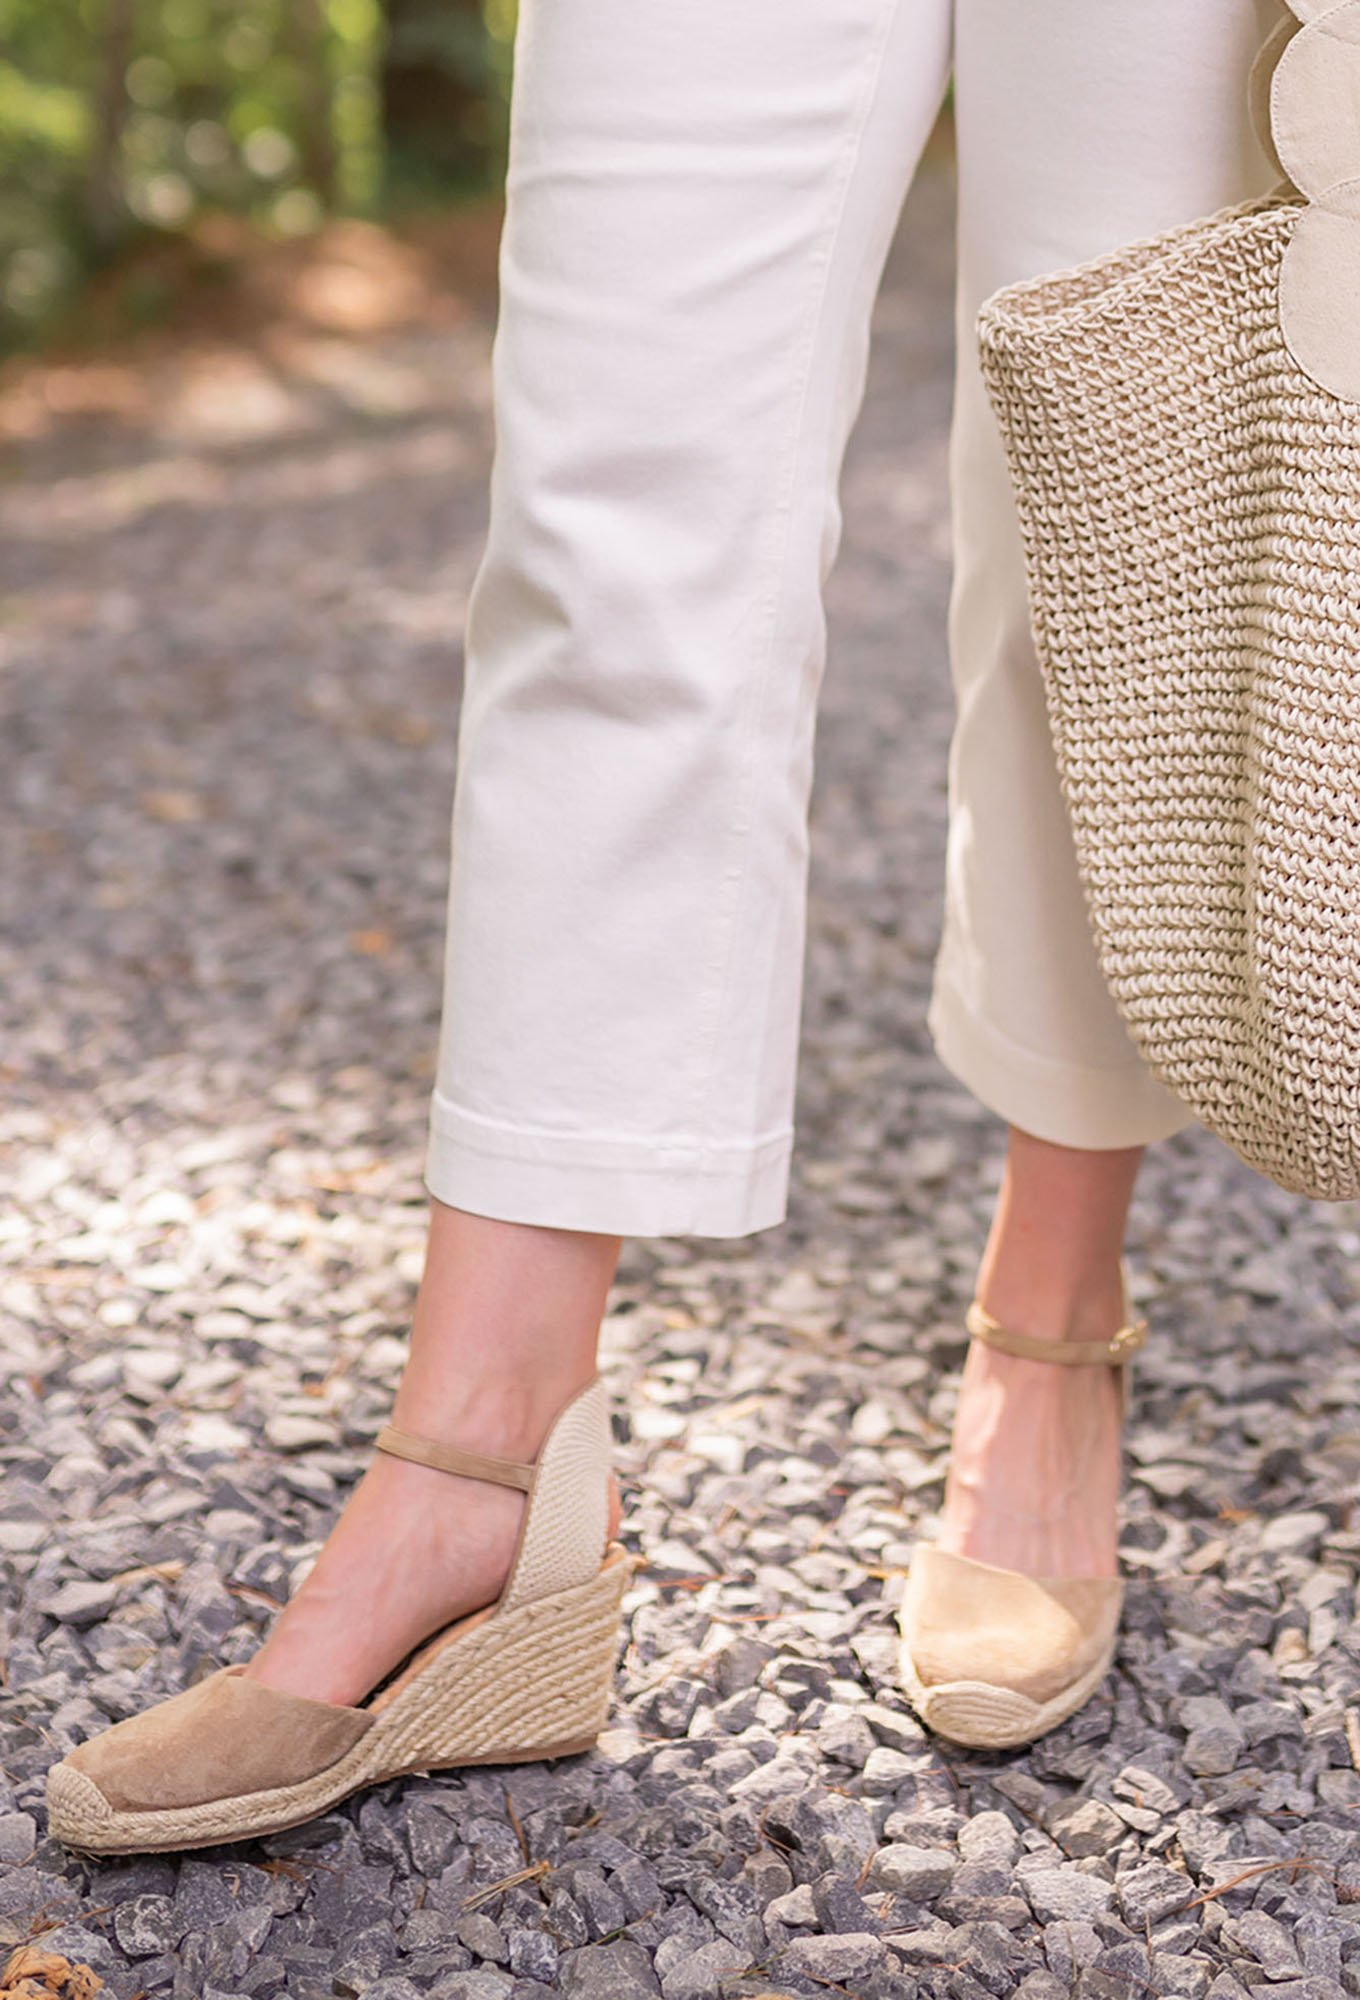 Ashley Brooke in espadrilles and white cropped pants on www.ashleybrookedesigns.com